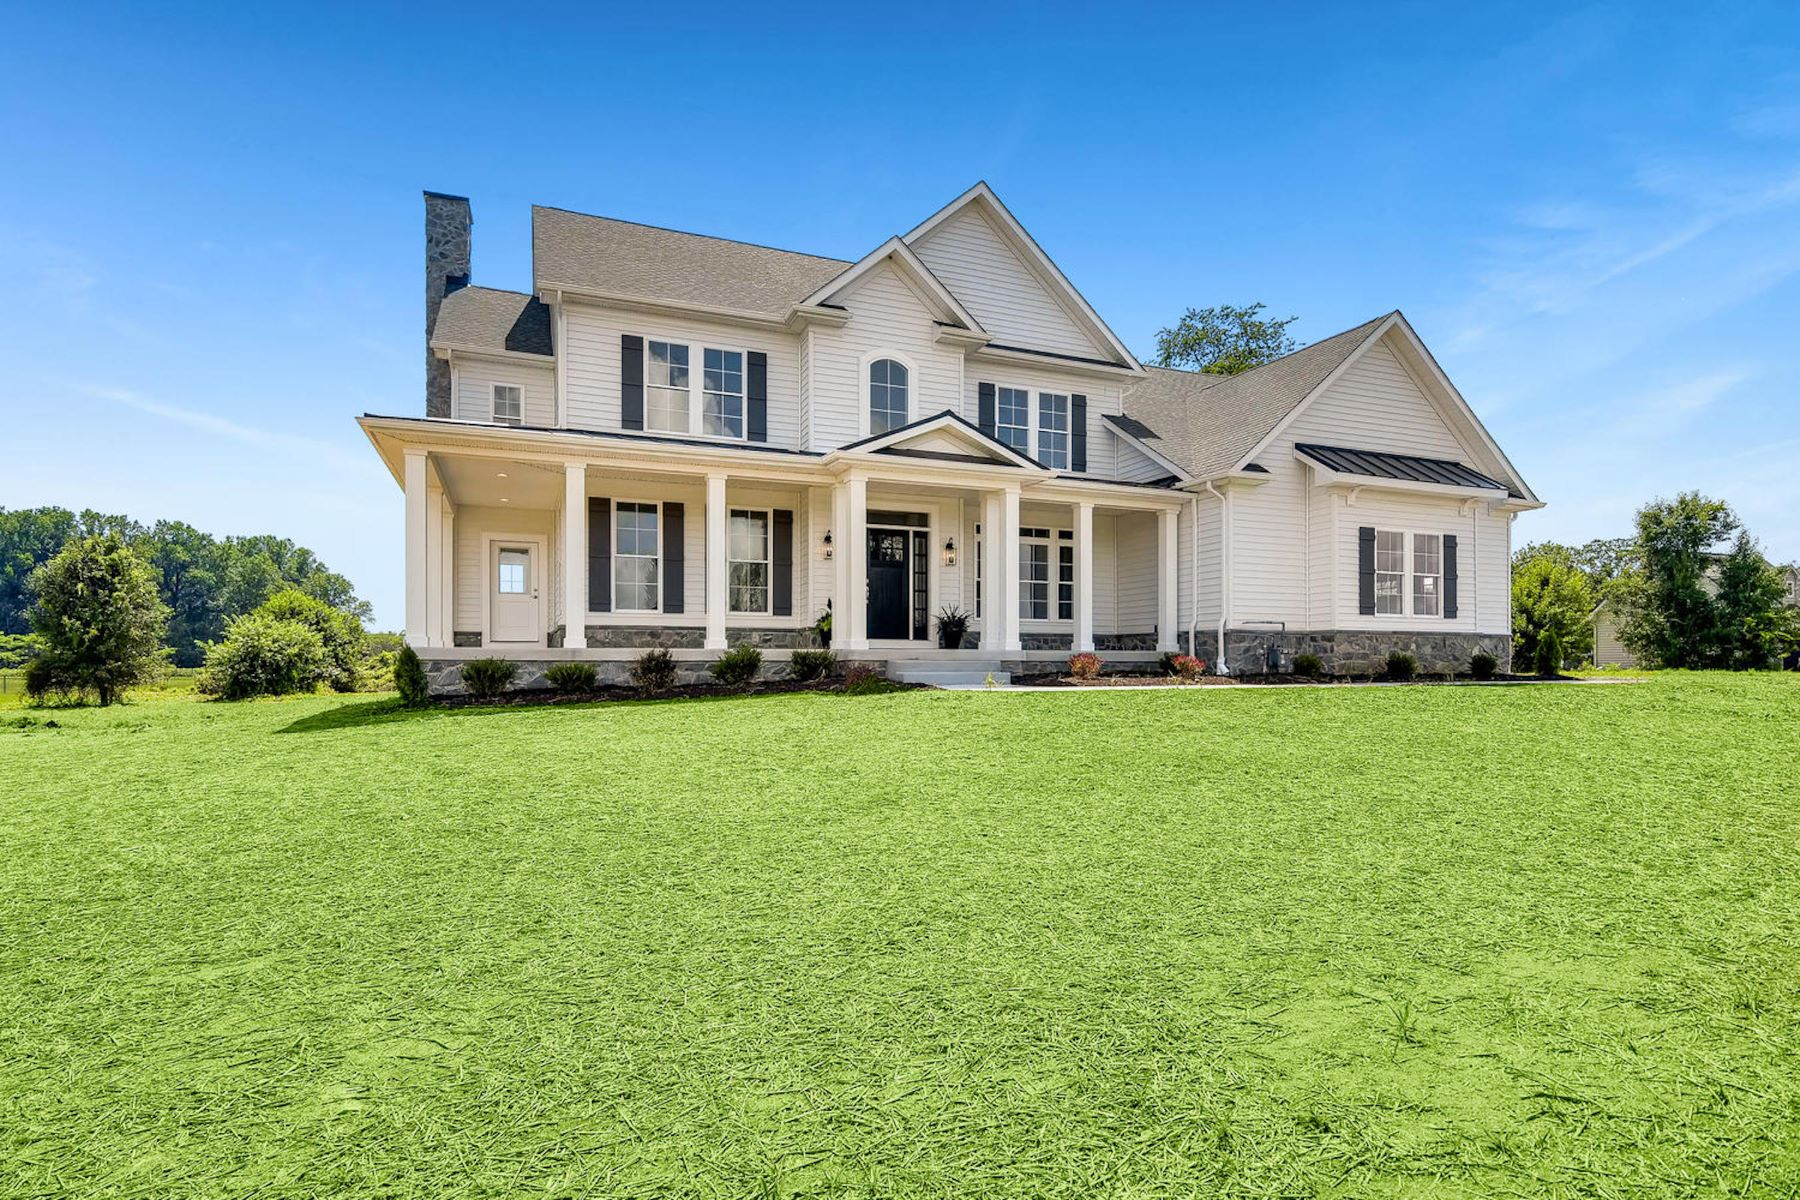 Additional photo for property listing at Ayres Property 2809 12 Stones Road, Bel Air, Maryland 21015 United States